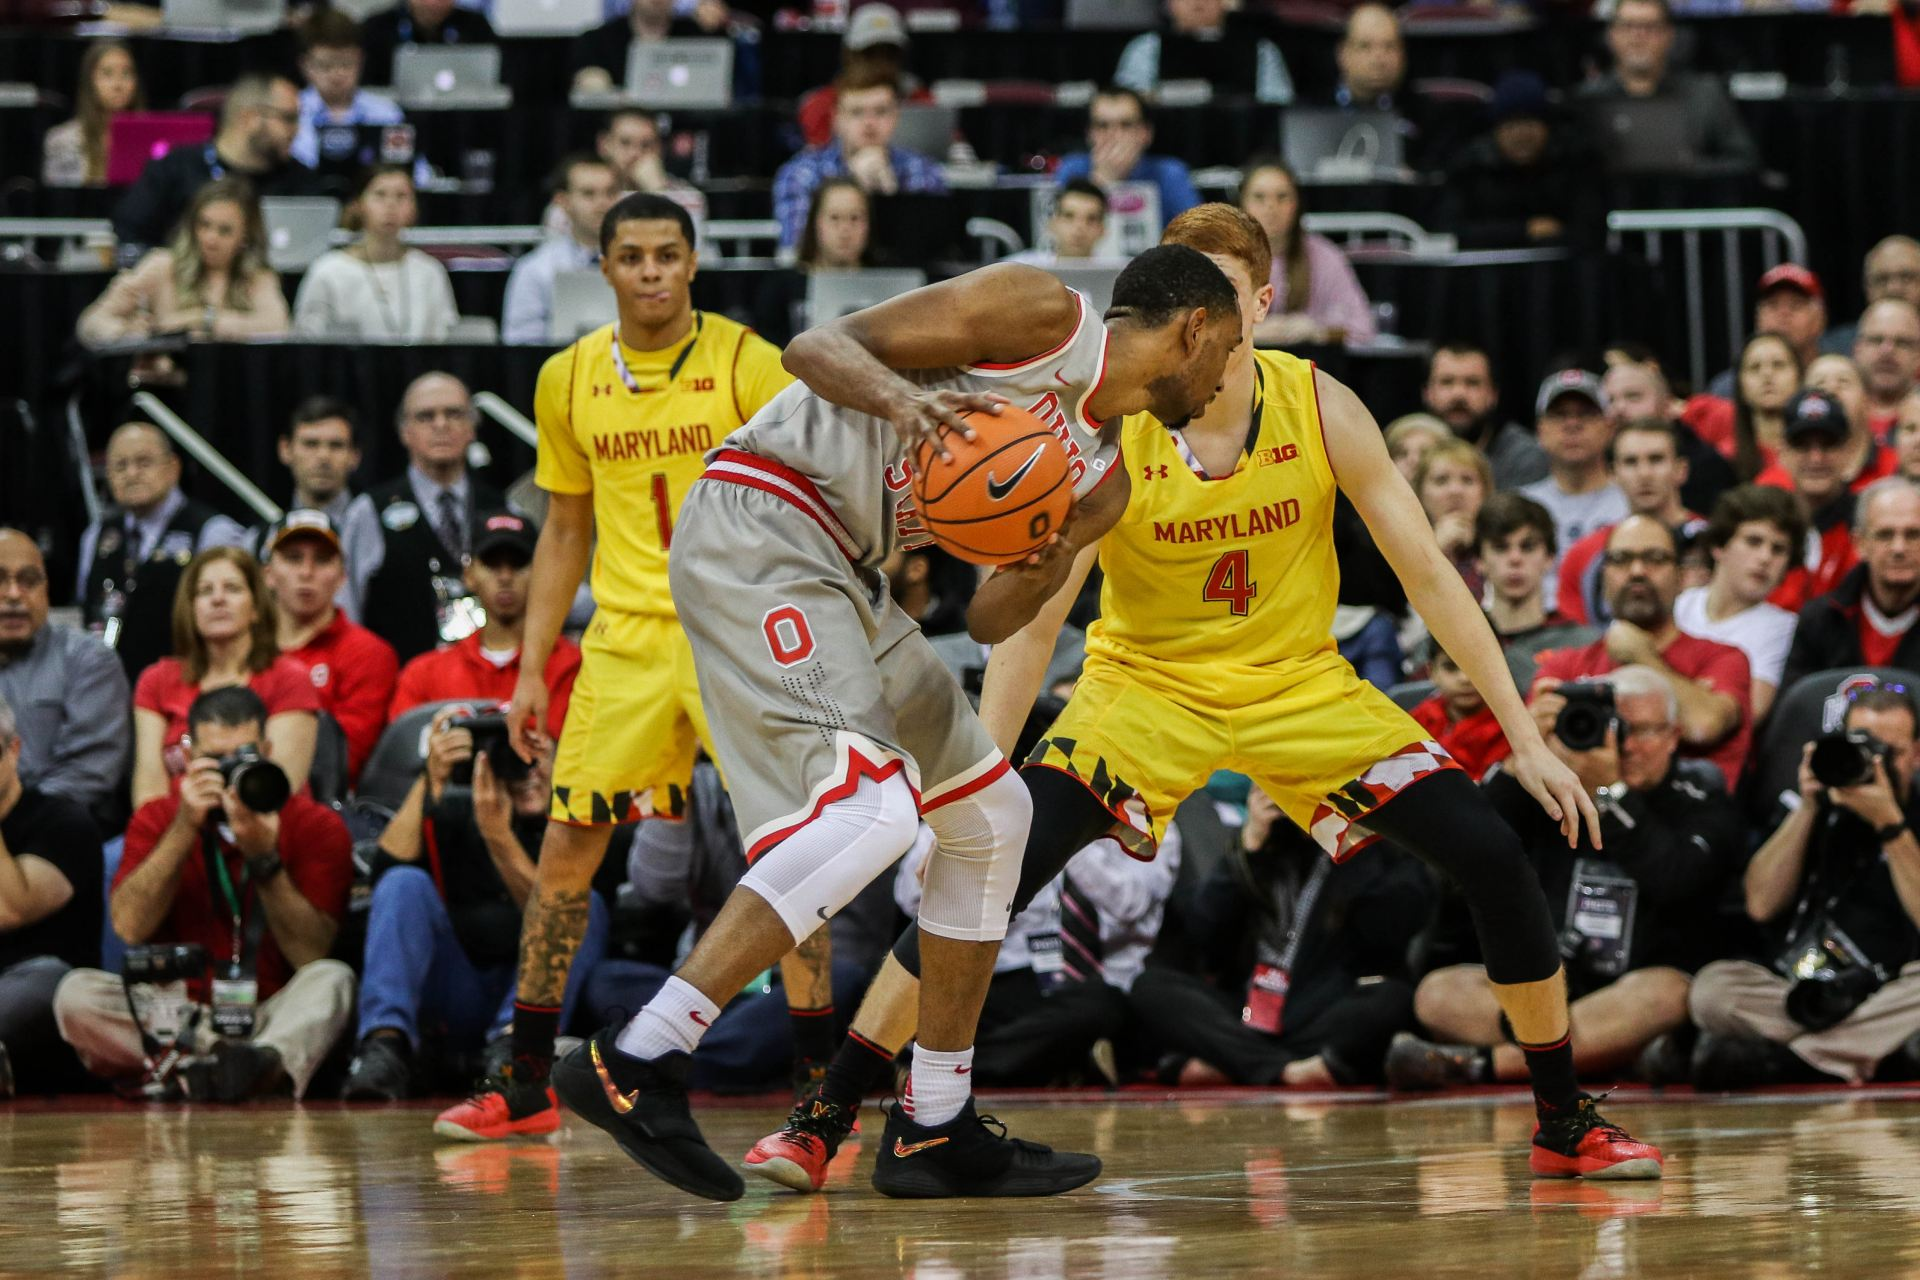 Men's Basketball: Where can Ohio State find production if not from Keita Bates-Diop?